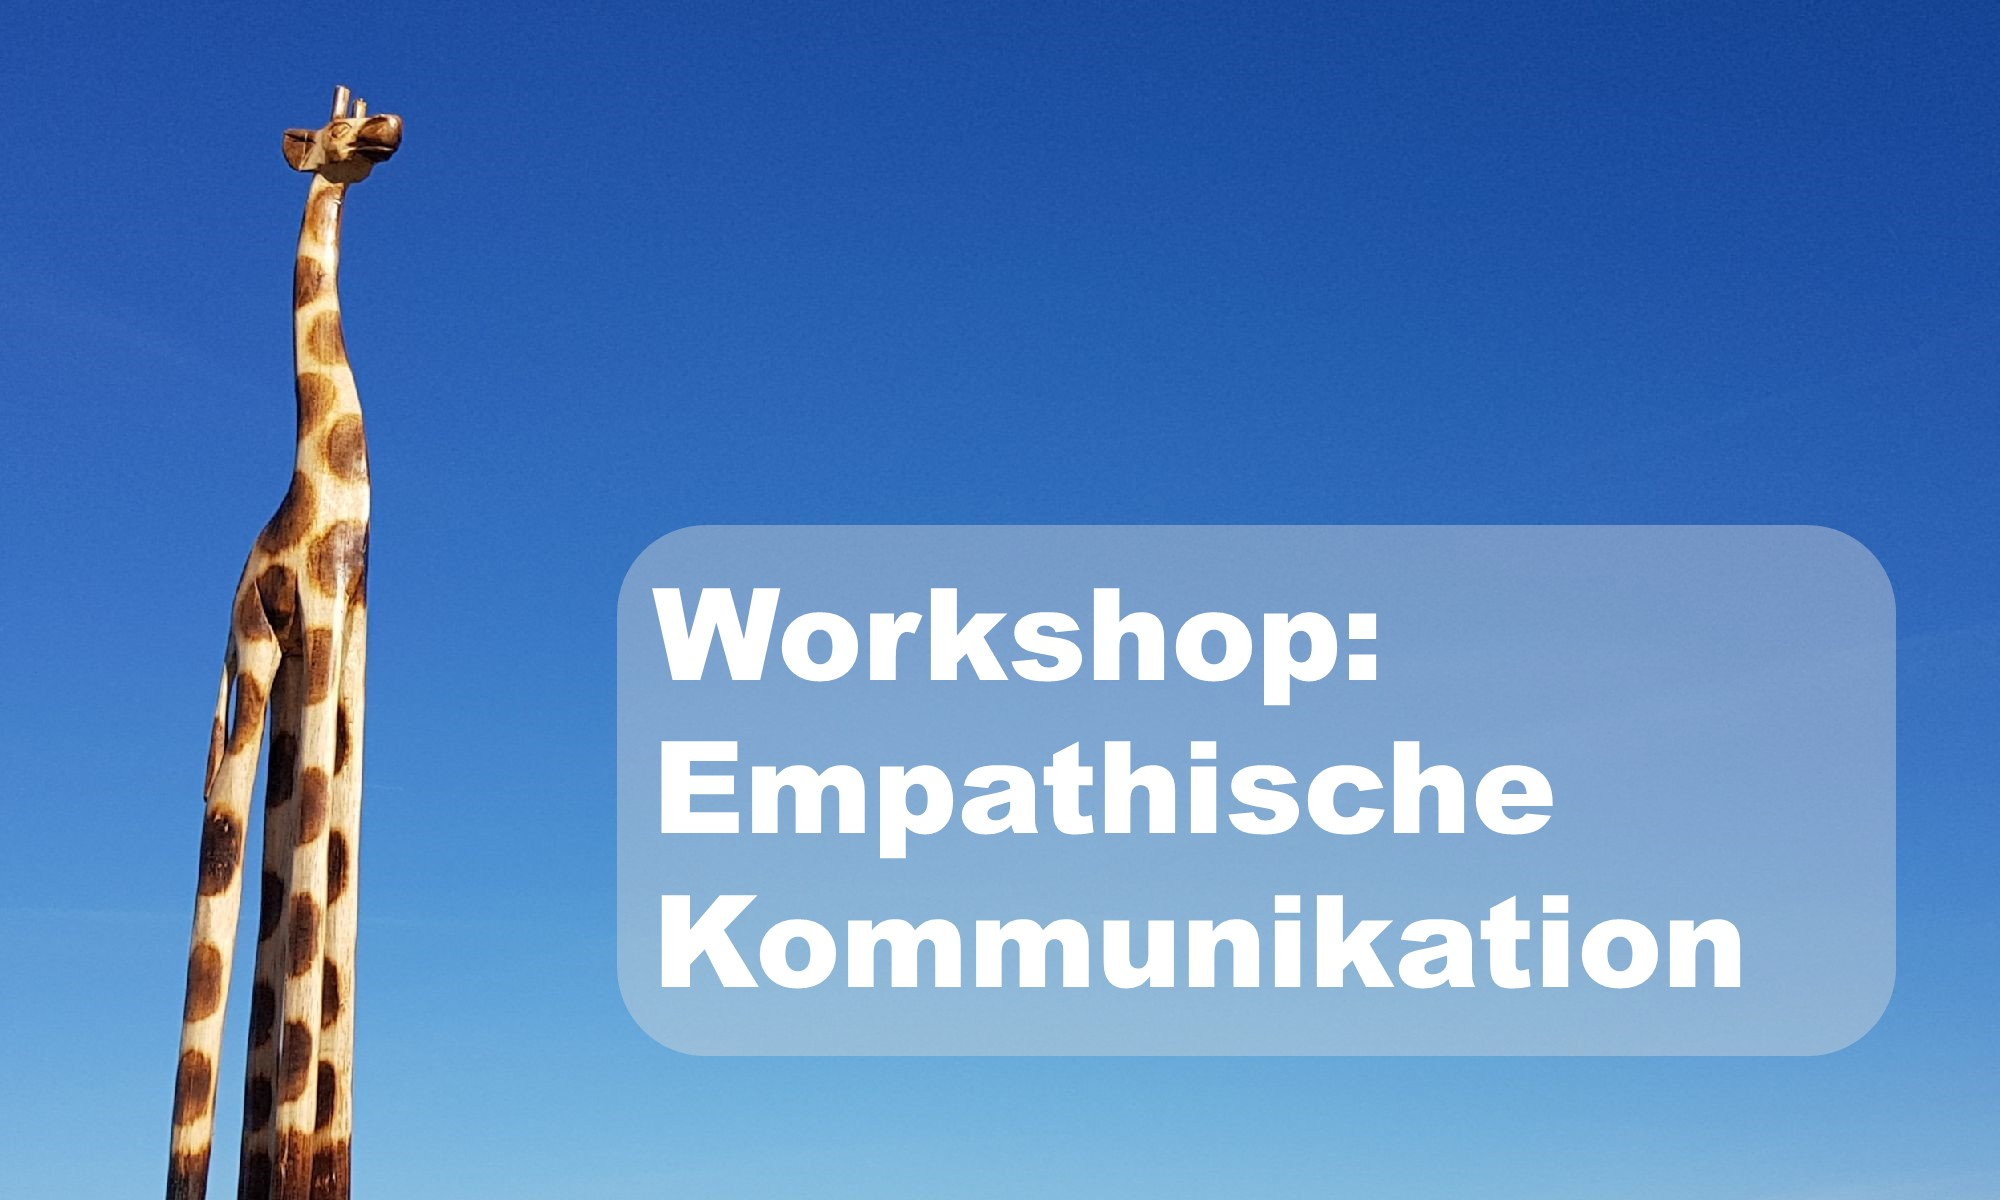 Workshop Empathische Kommunikation